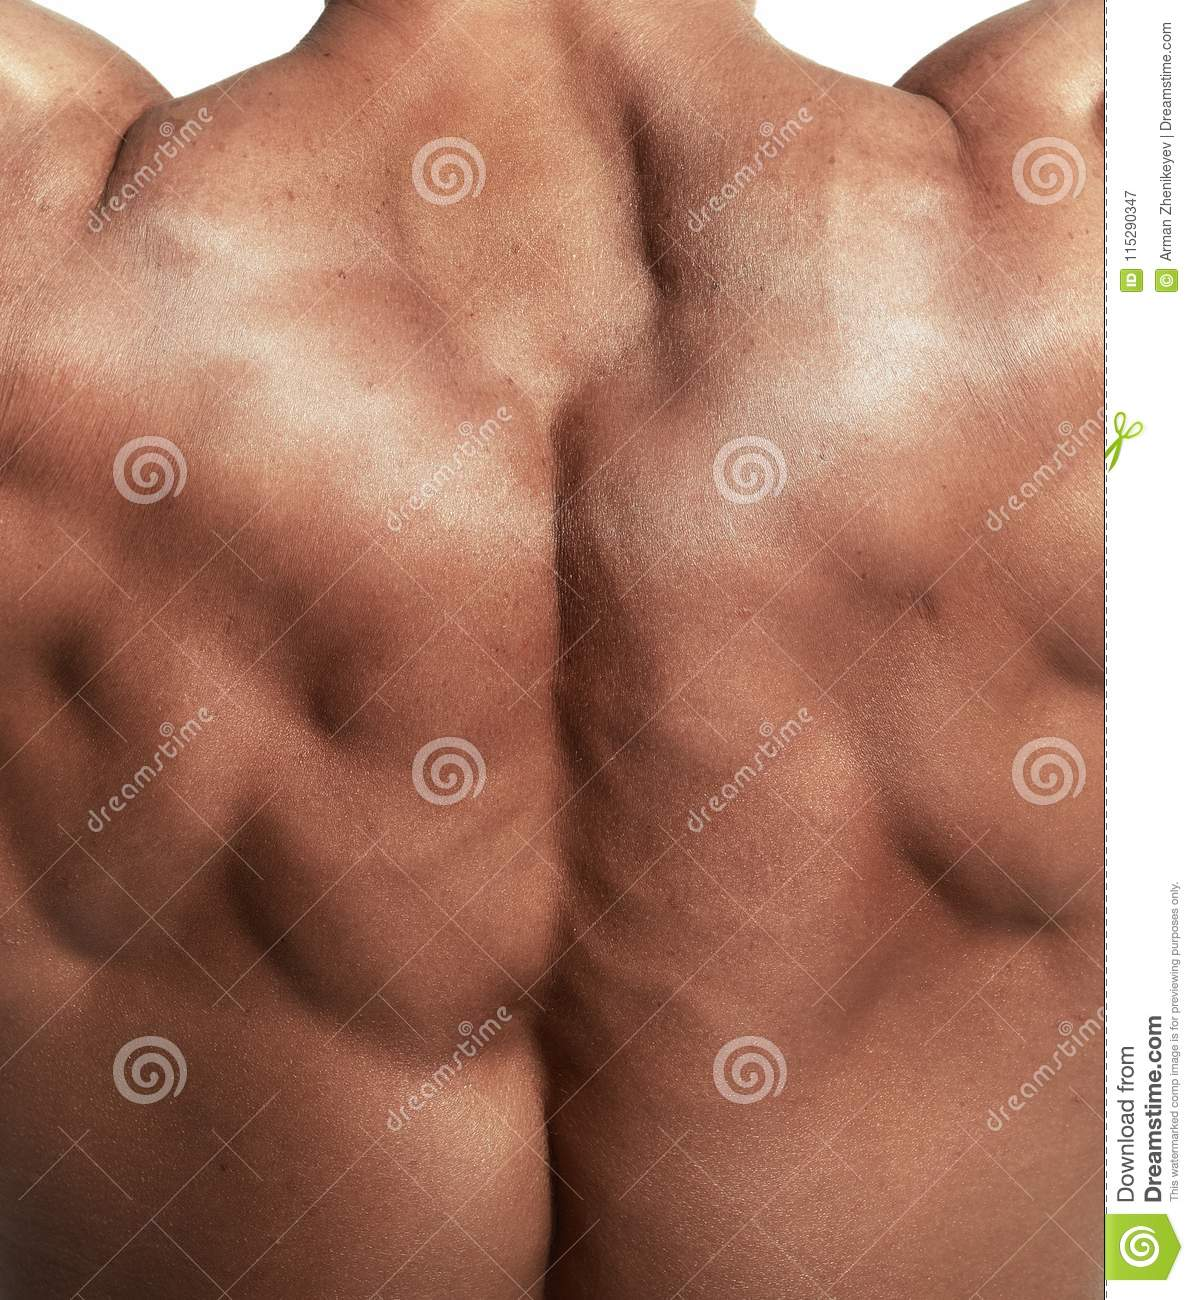 Muscular Torso Of Bodybuilder Stock Image Image Of People